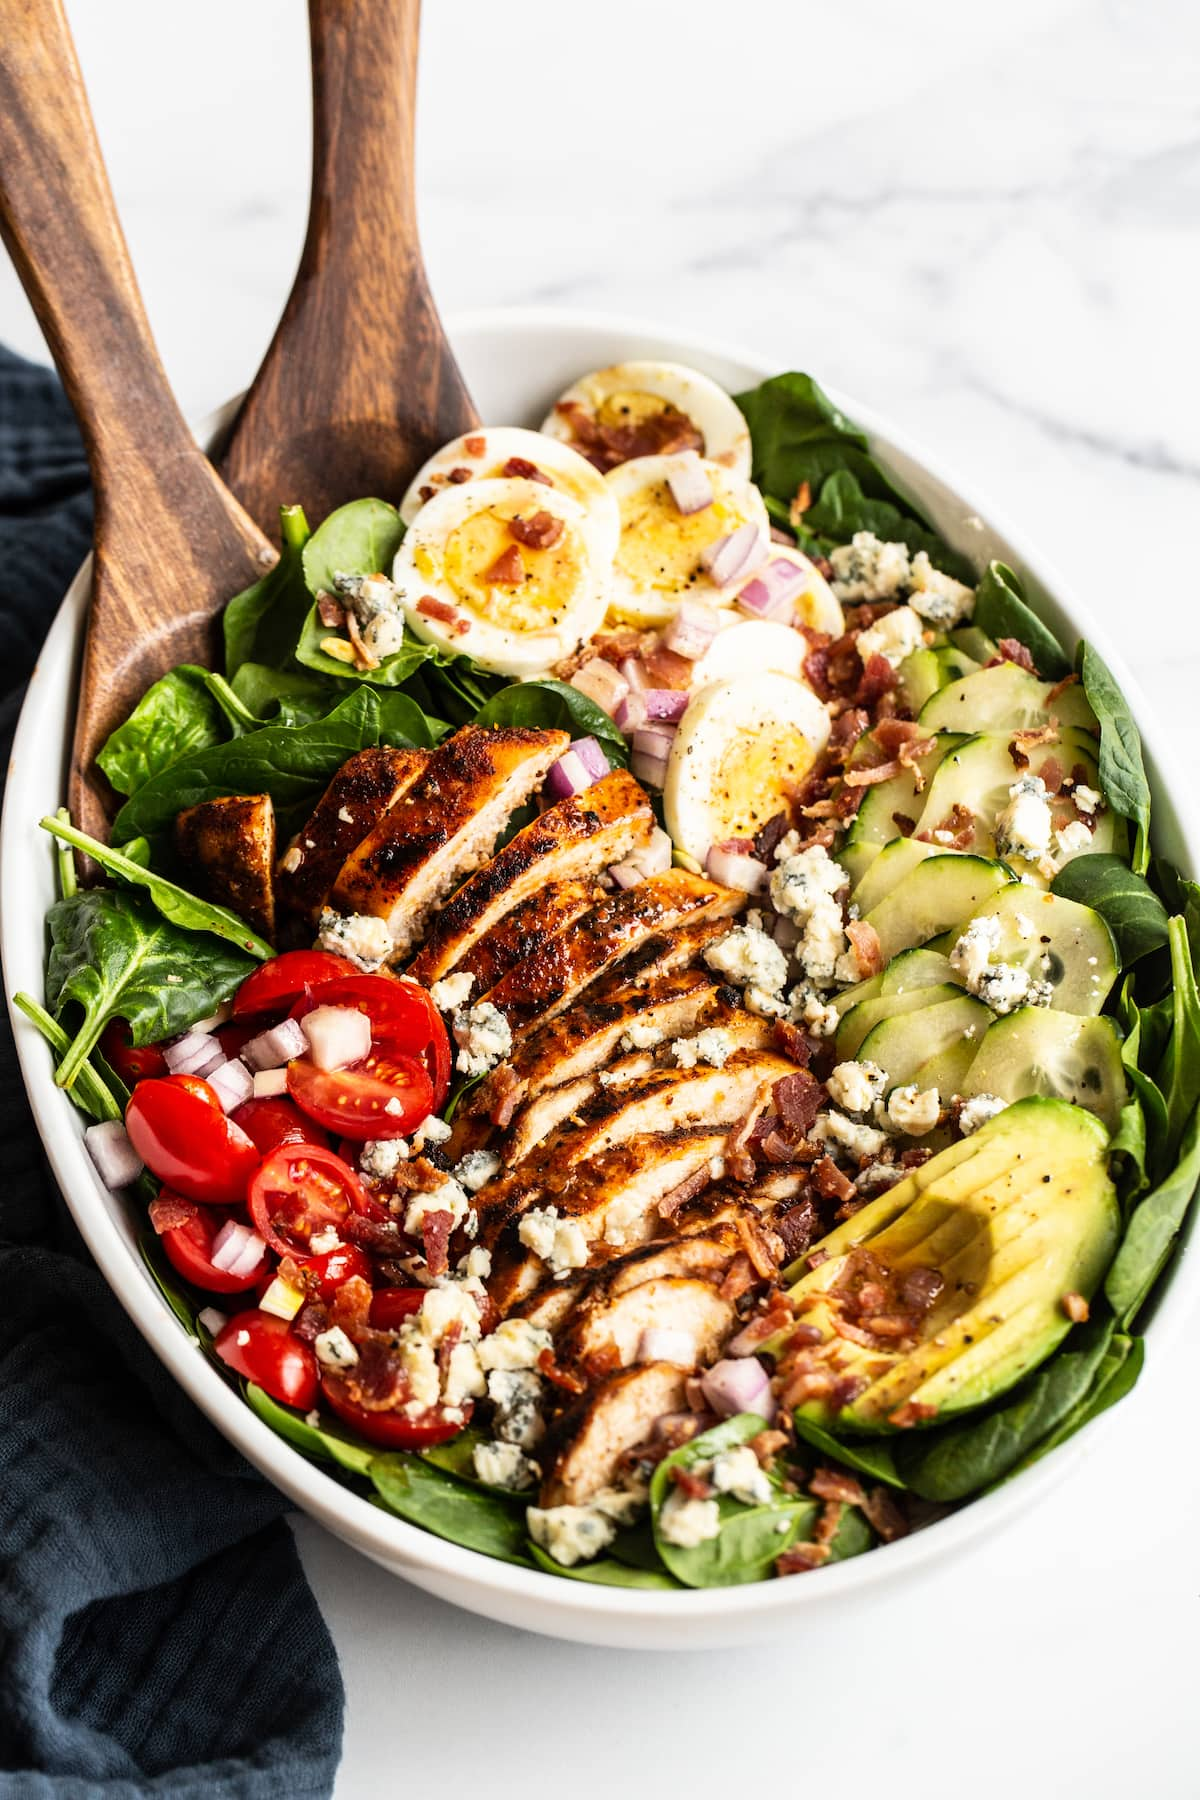 Cobb salad in a large serving bowl with hard boiled egg, blue cheese, cucumber, avocado, blackened chicken, tomato, spinach and bacon. Two wood salad serving spoons are in the bowl.